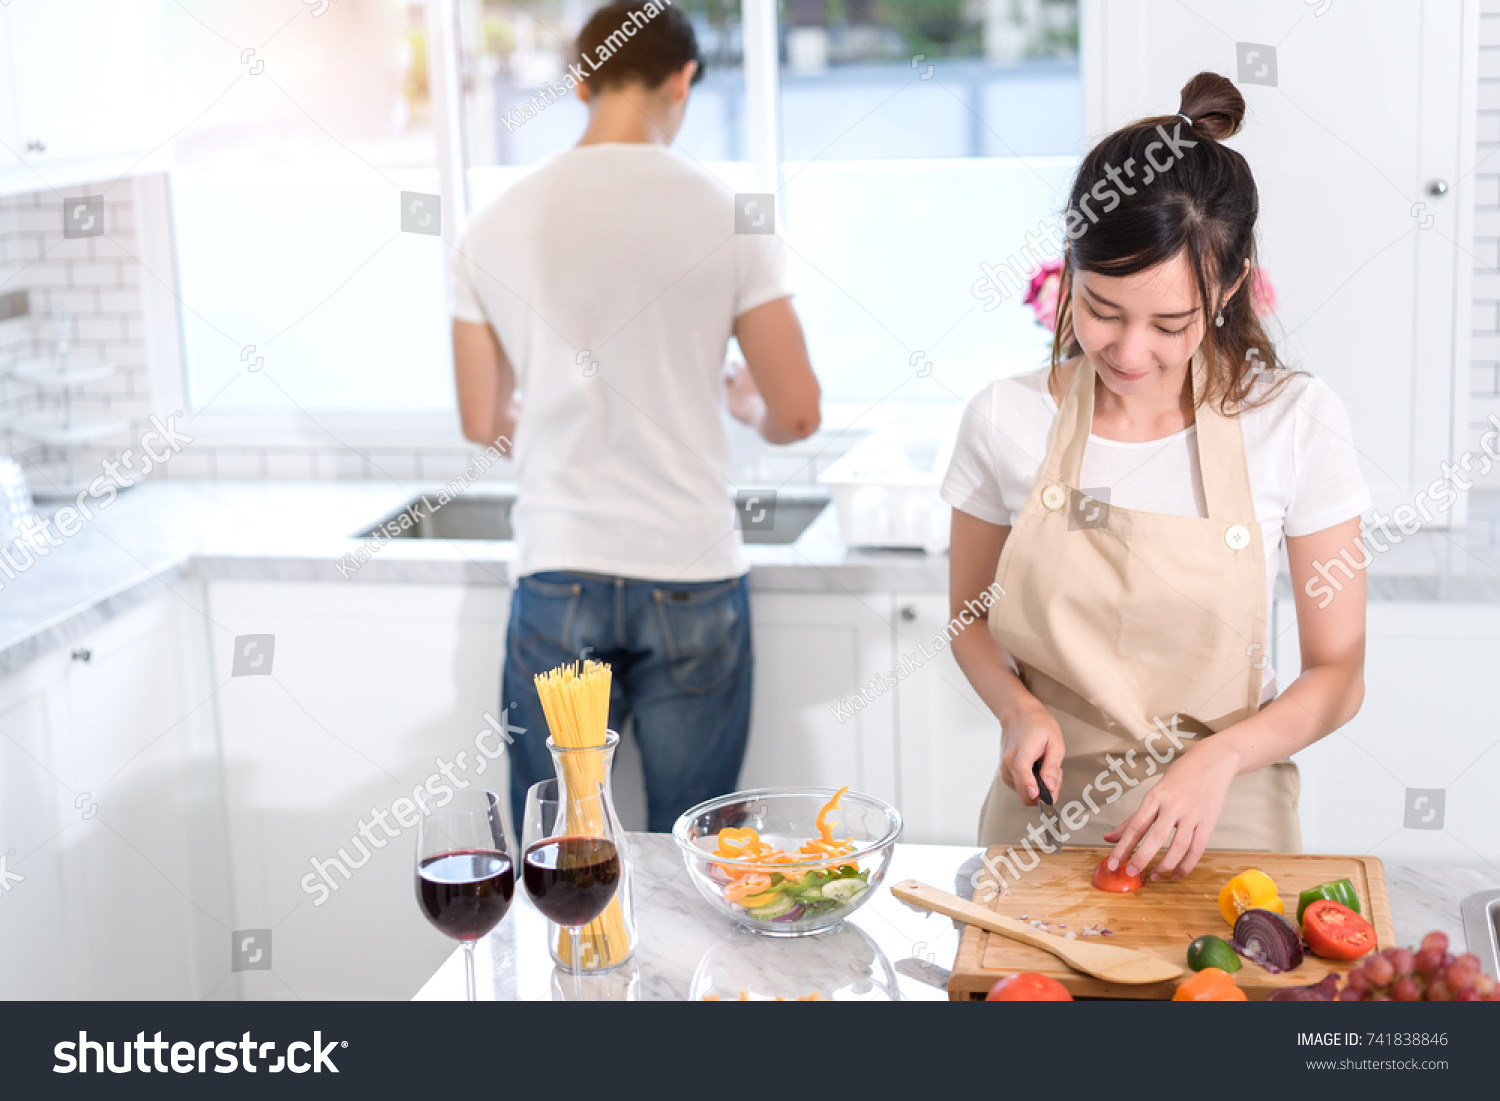 Couple Cooking Food Kitchen Room Young Stock Photo (Royalty Free ...